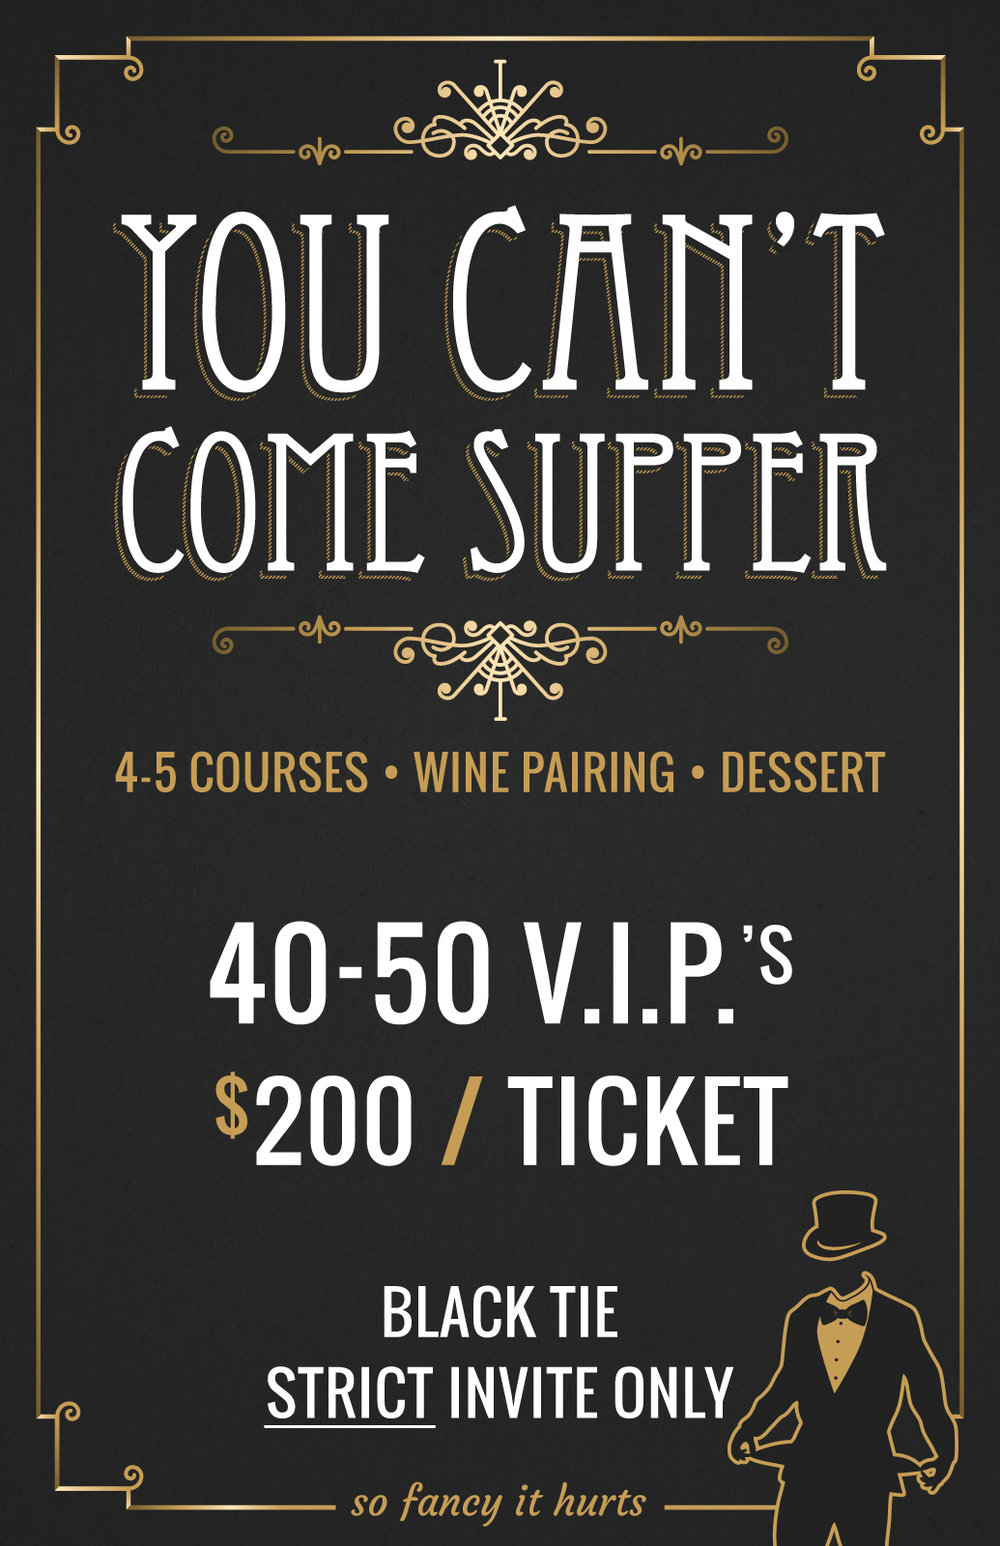 You-Can't-Come-Supper-Ad.jpg